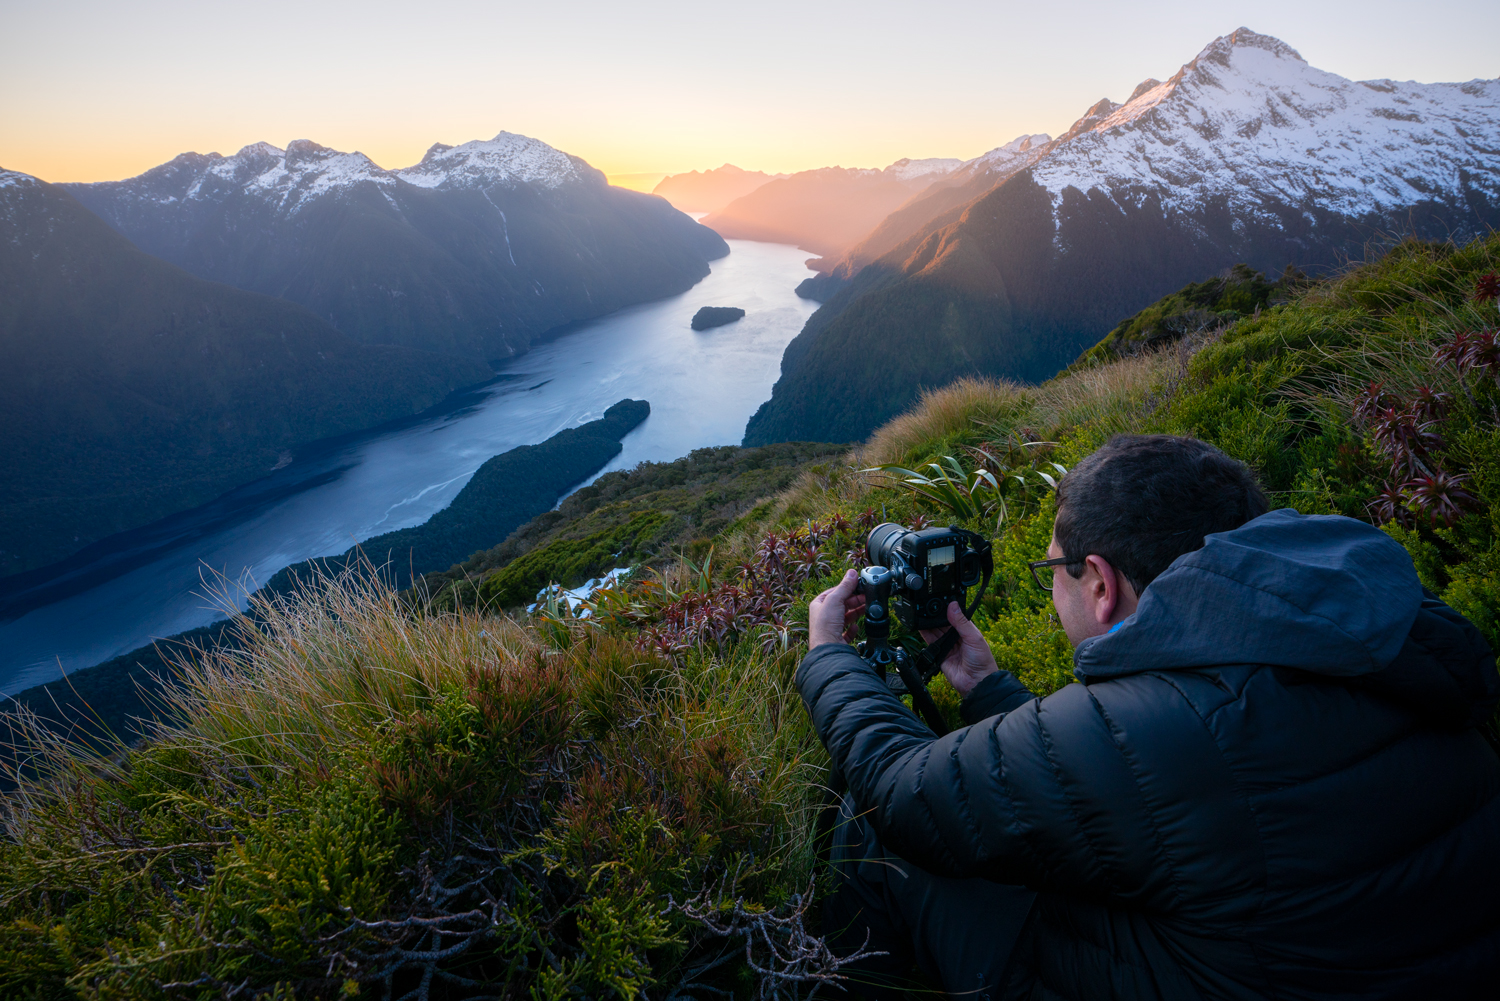 New Zealand wilderness photography workshop